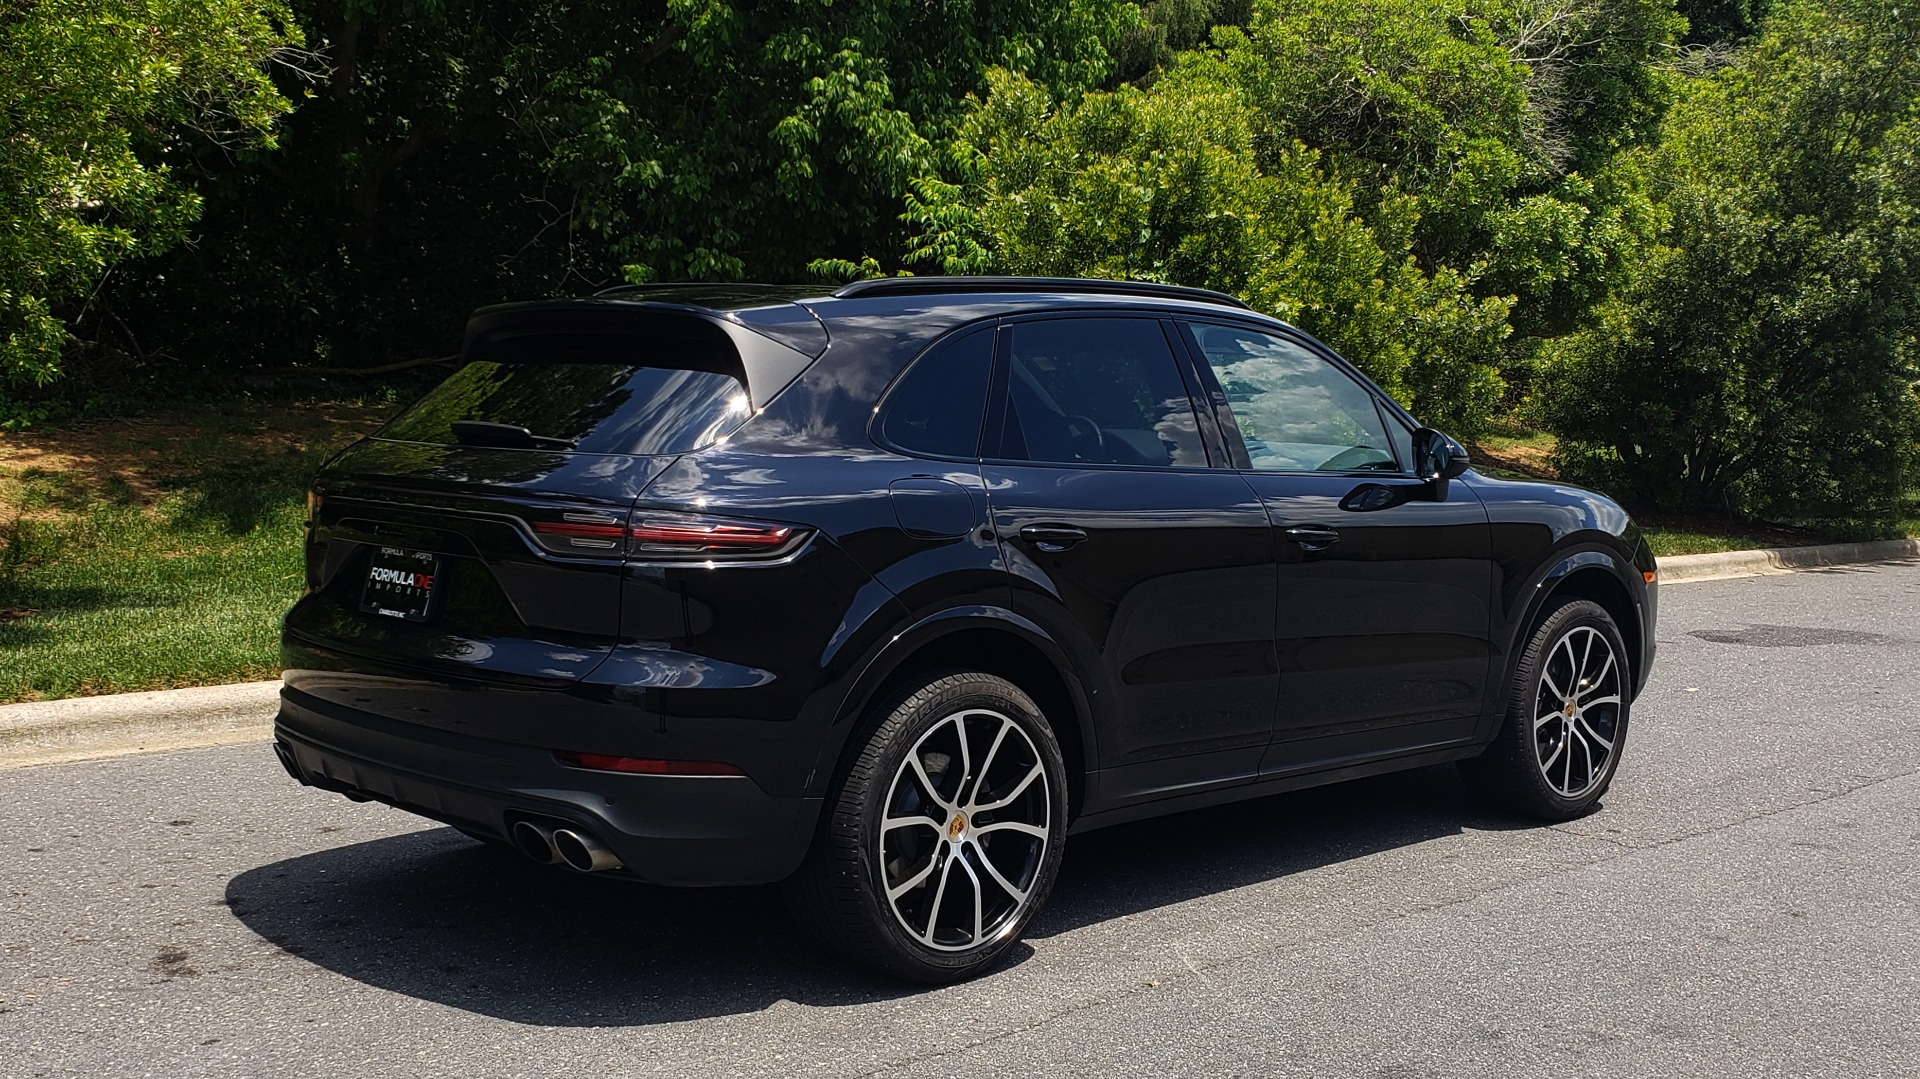 Used 2019 Porsche CAYENNE S AWD / NAV / SUNROOF / BOSE / REARVIEW / LOW MILES for sale Sold at Formula Imports in Charlotte NC 28227 9